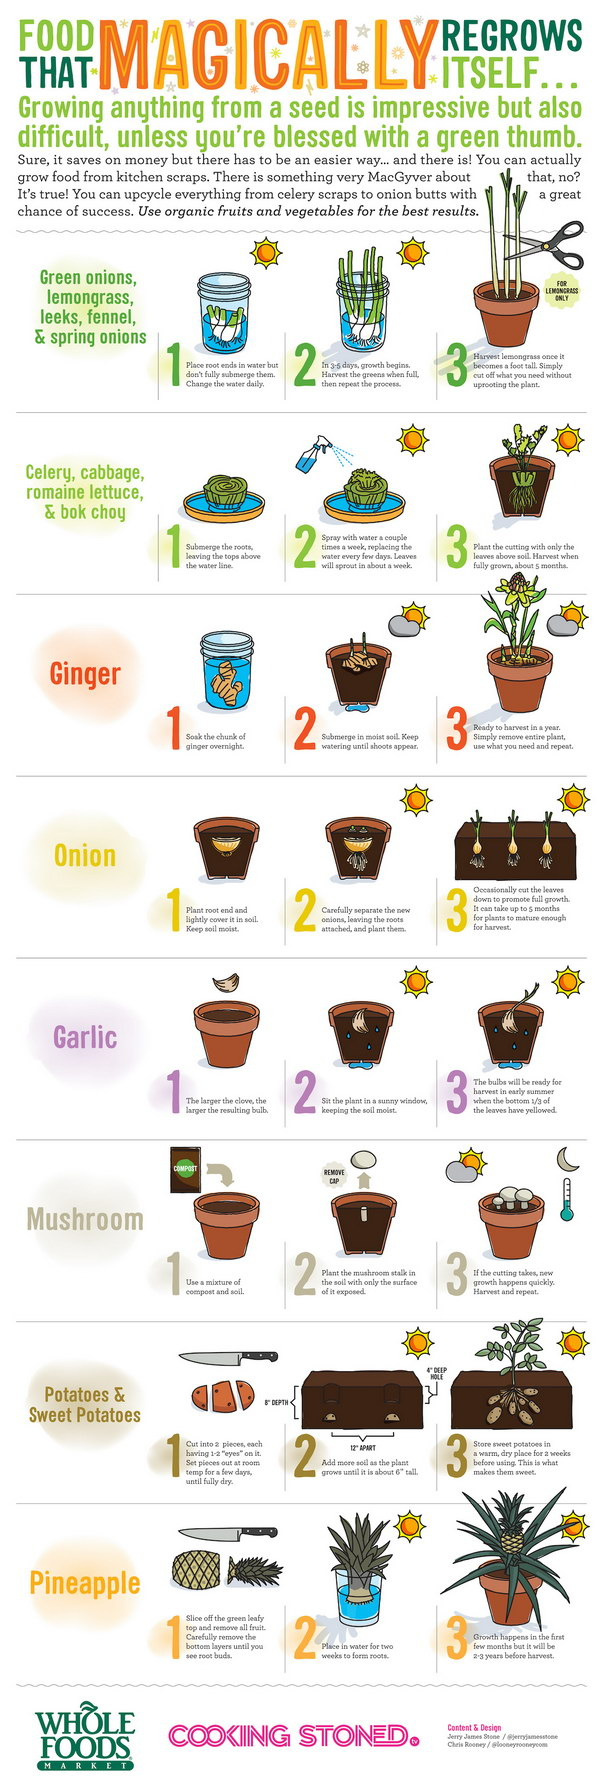 24-Upcycle-Your-Vegetable-Scraps-And-Regrow-Them-Easily-1